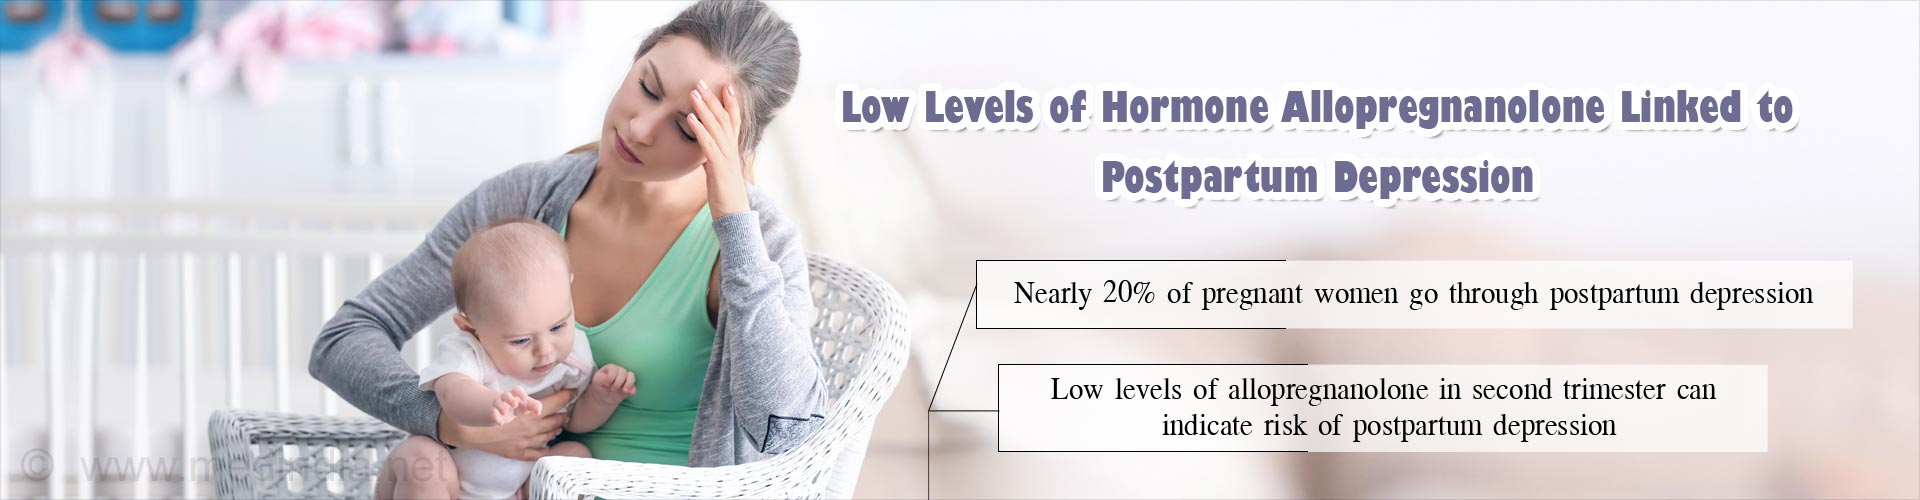 Postpartum Depression Likely In Women With Low Anti-Anxiety Hormone